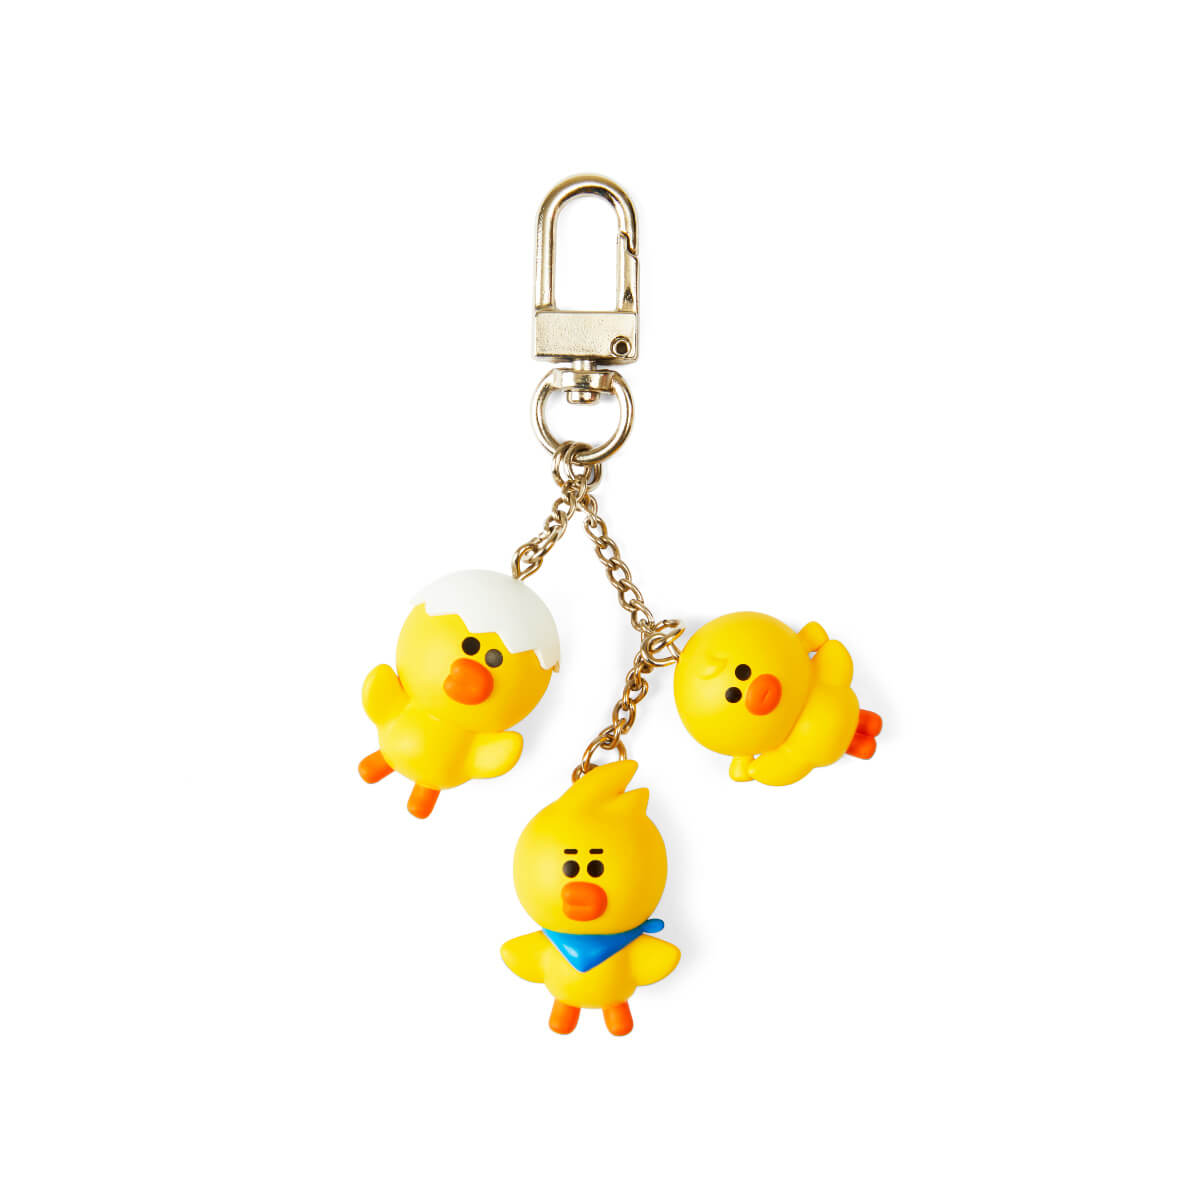 SALLY & FRIENDS Waggle Waggle Keyring